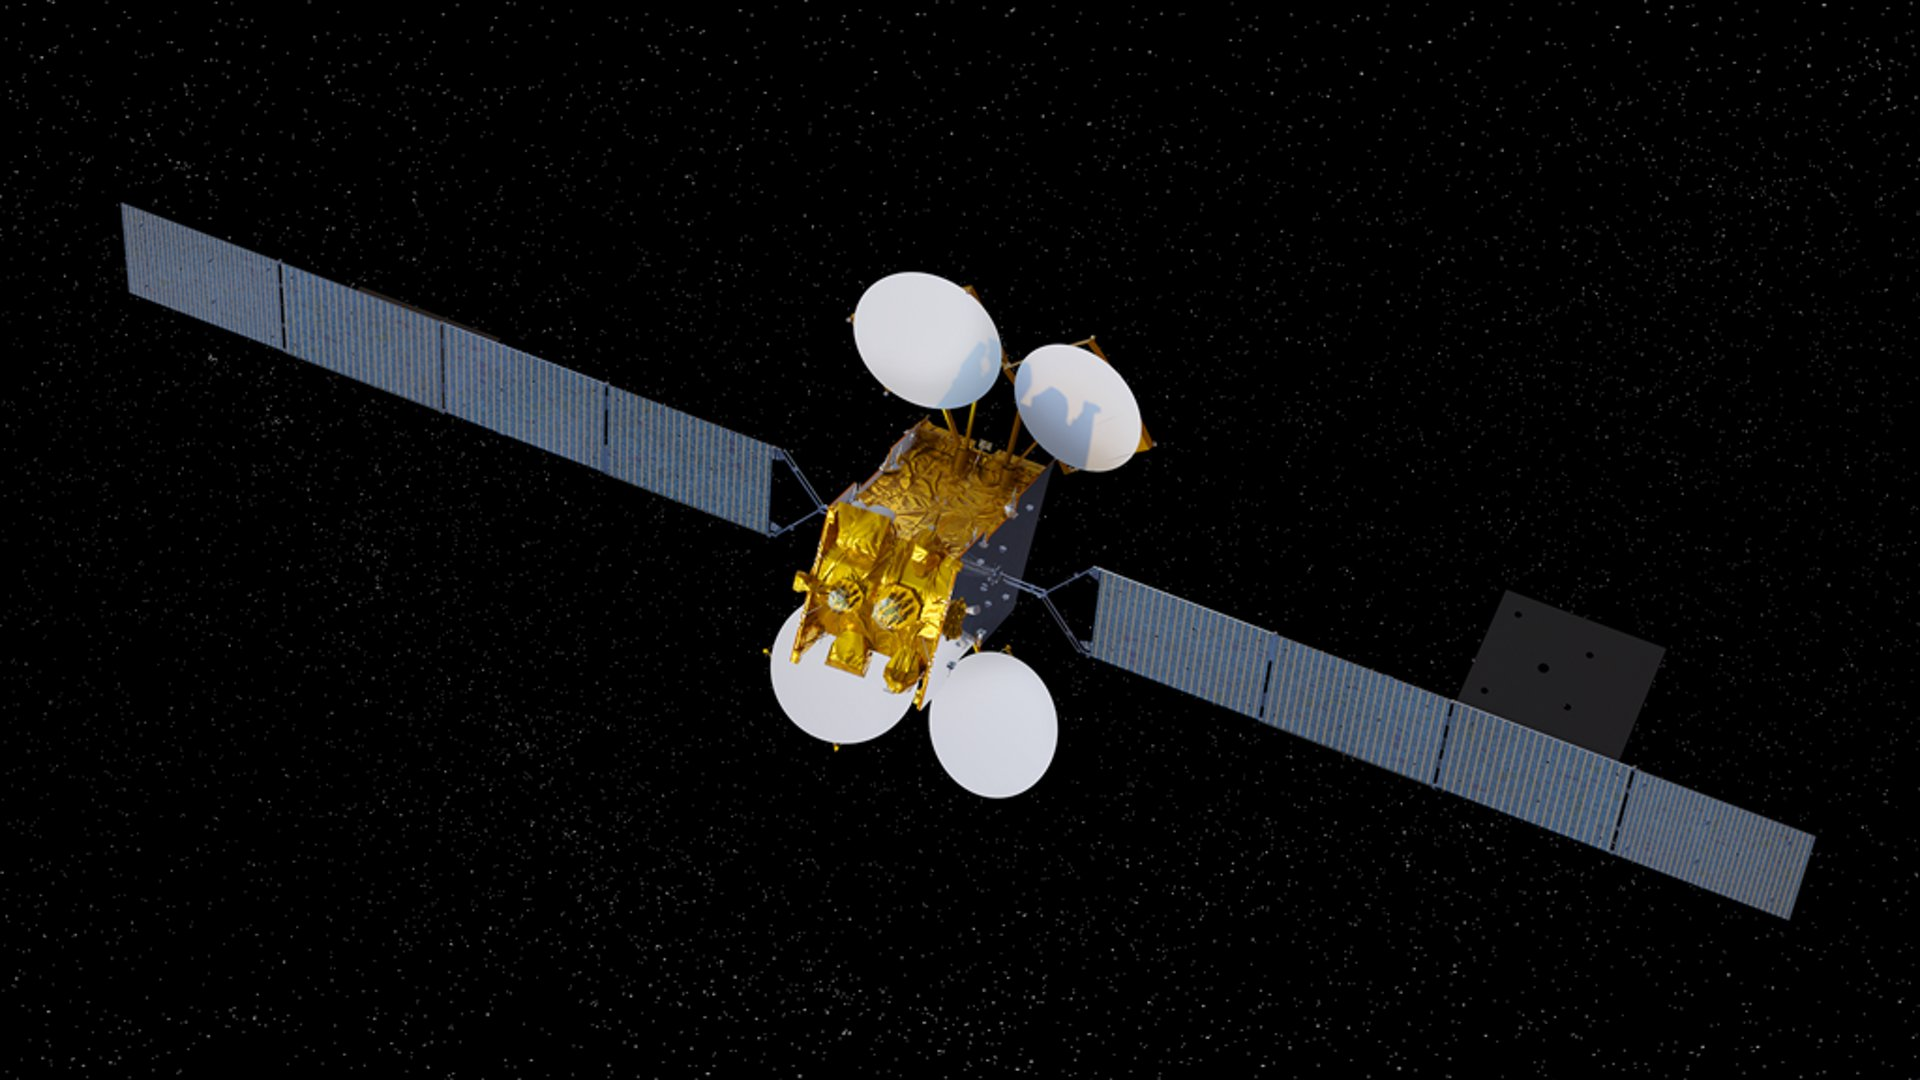 Airbus to build multimission satellite for MEASAT